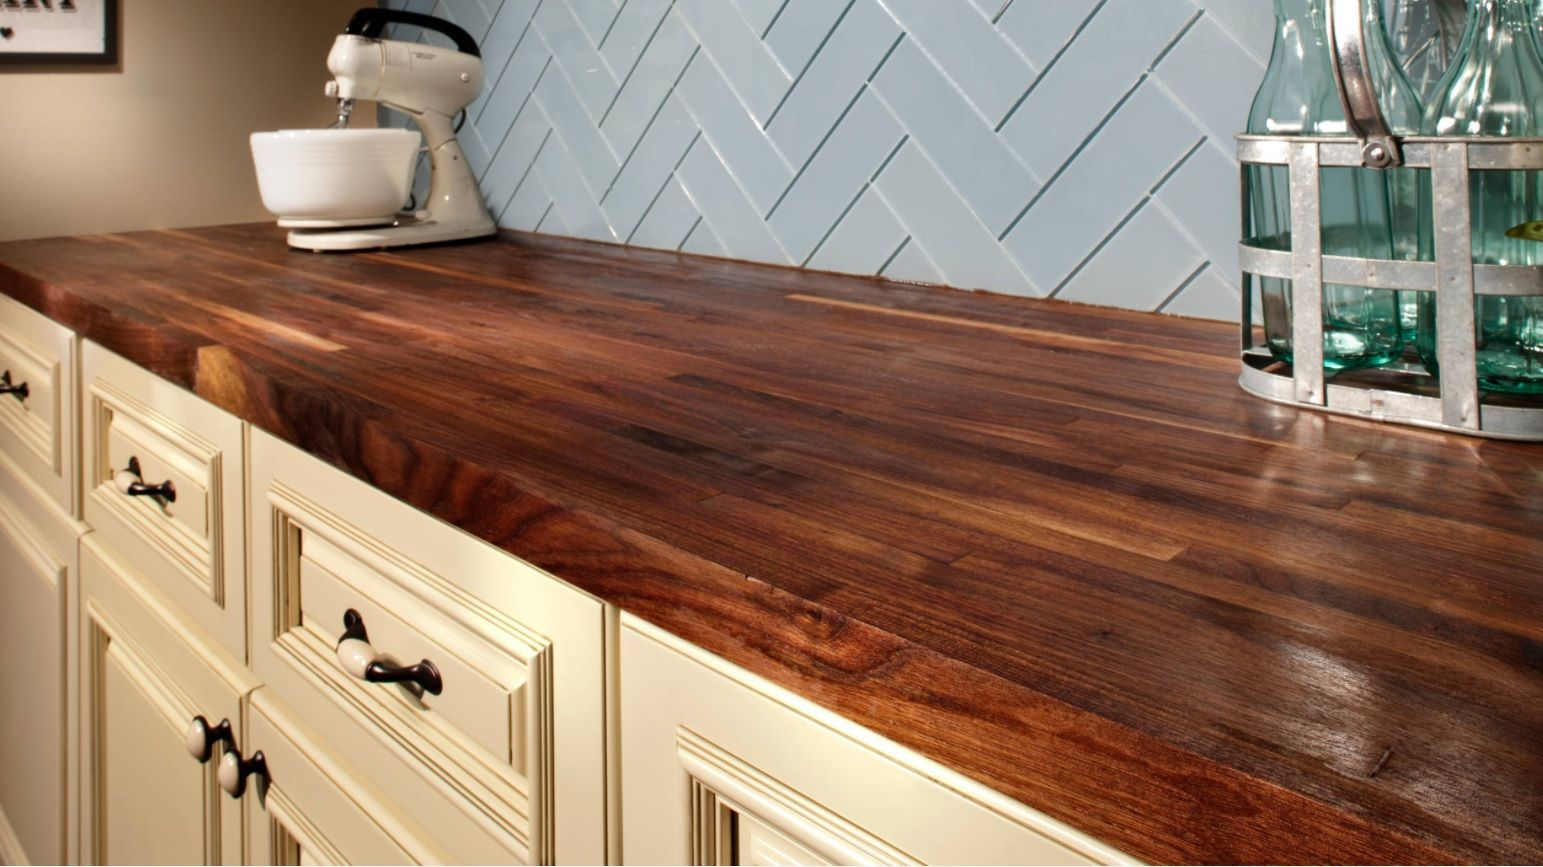 Butcher Block Countertop in Modern Kitchen Interior. Close-up view to the red wooden top